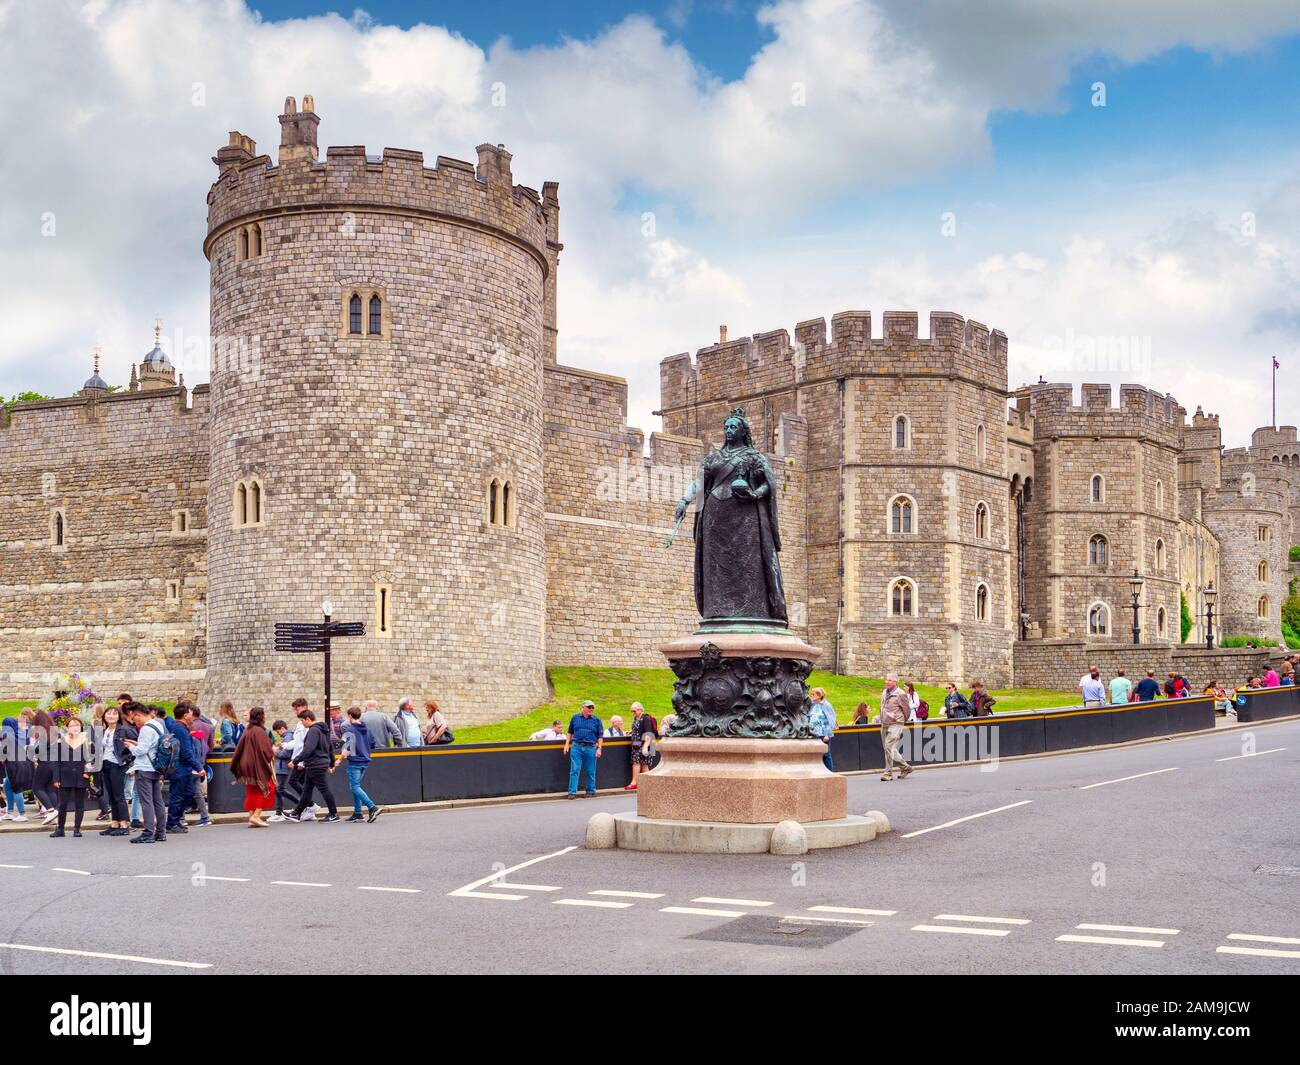 5 June 2019: Windsor, Berkshire, UK - Windsor Castle, the Queen's home, street scene with statue of Queen Victoria, tourists and tour group. Stock Photo